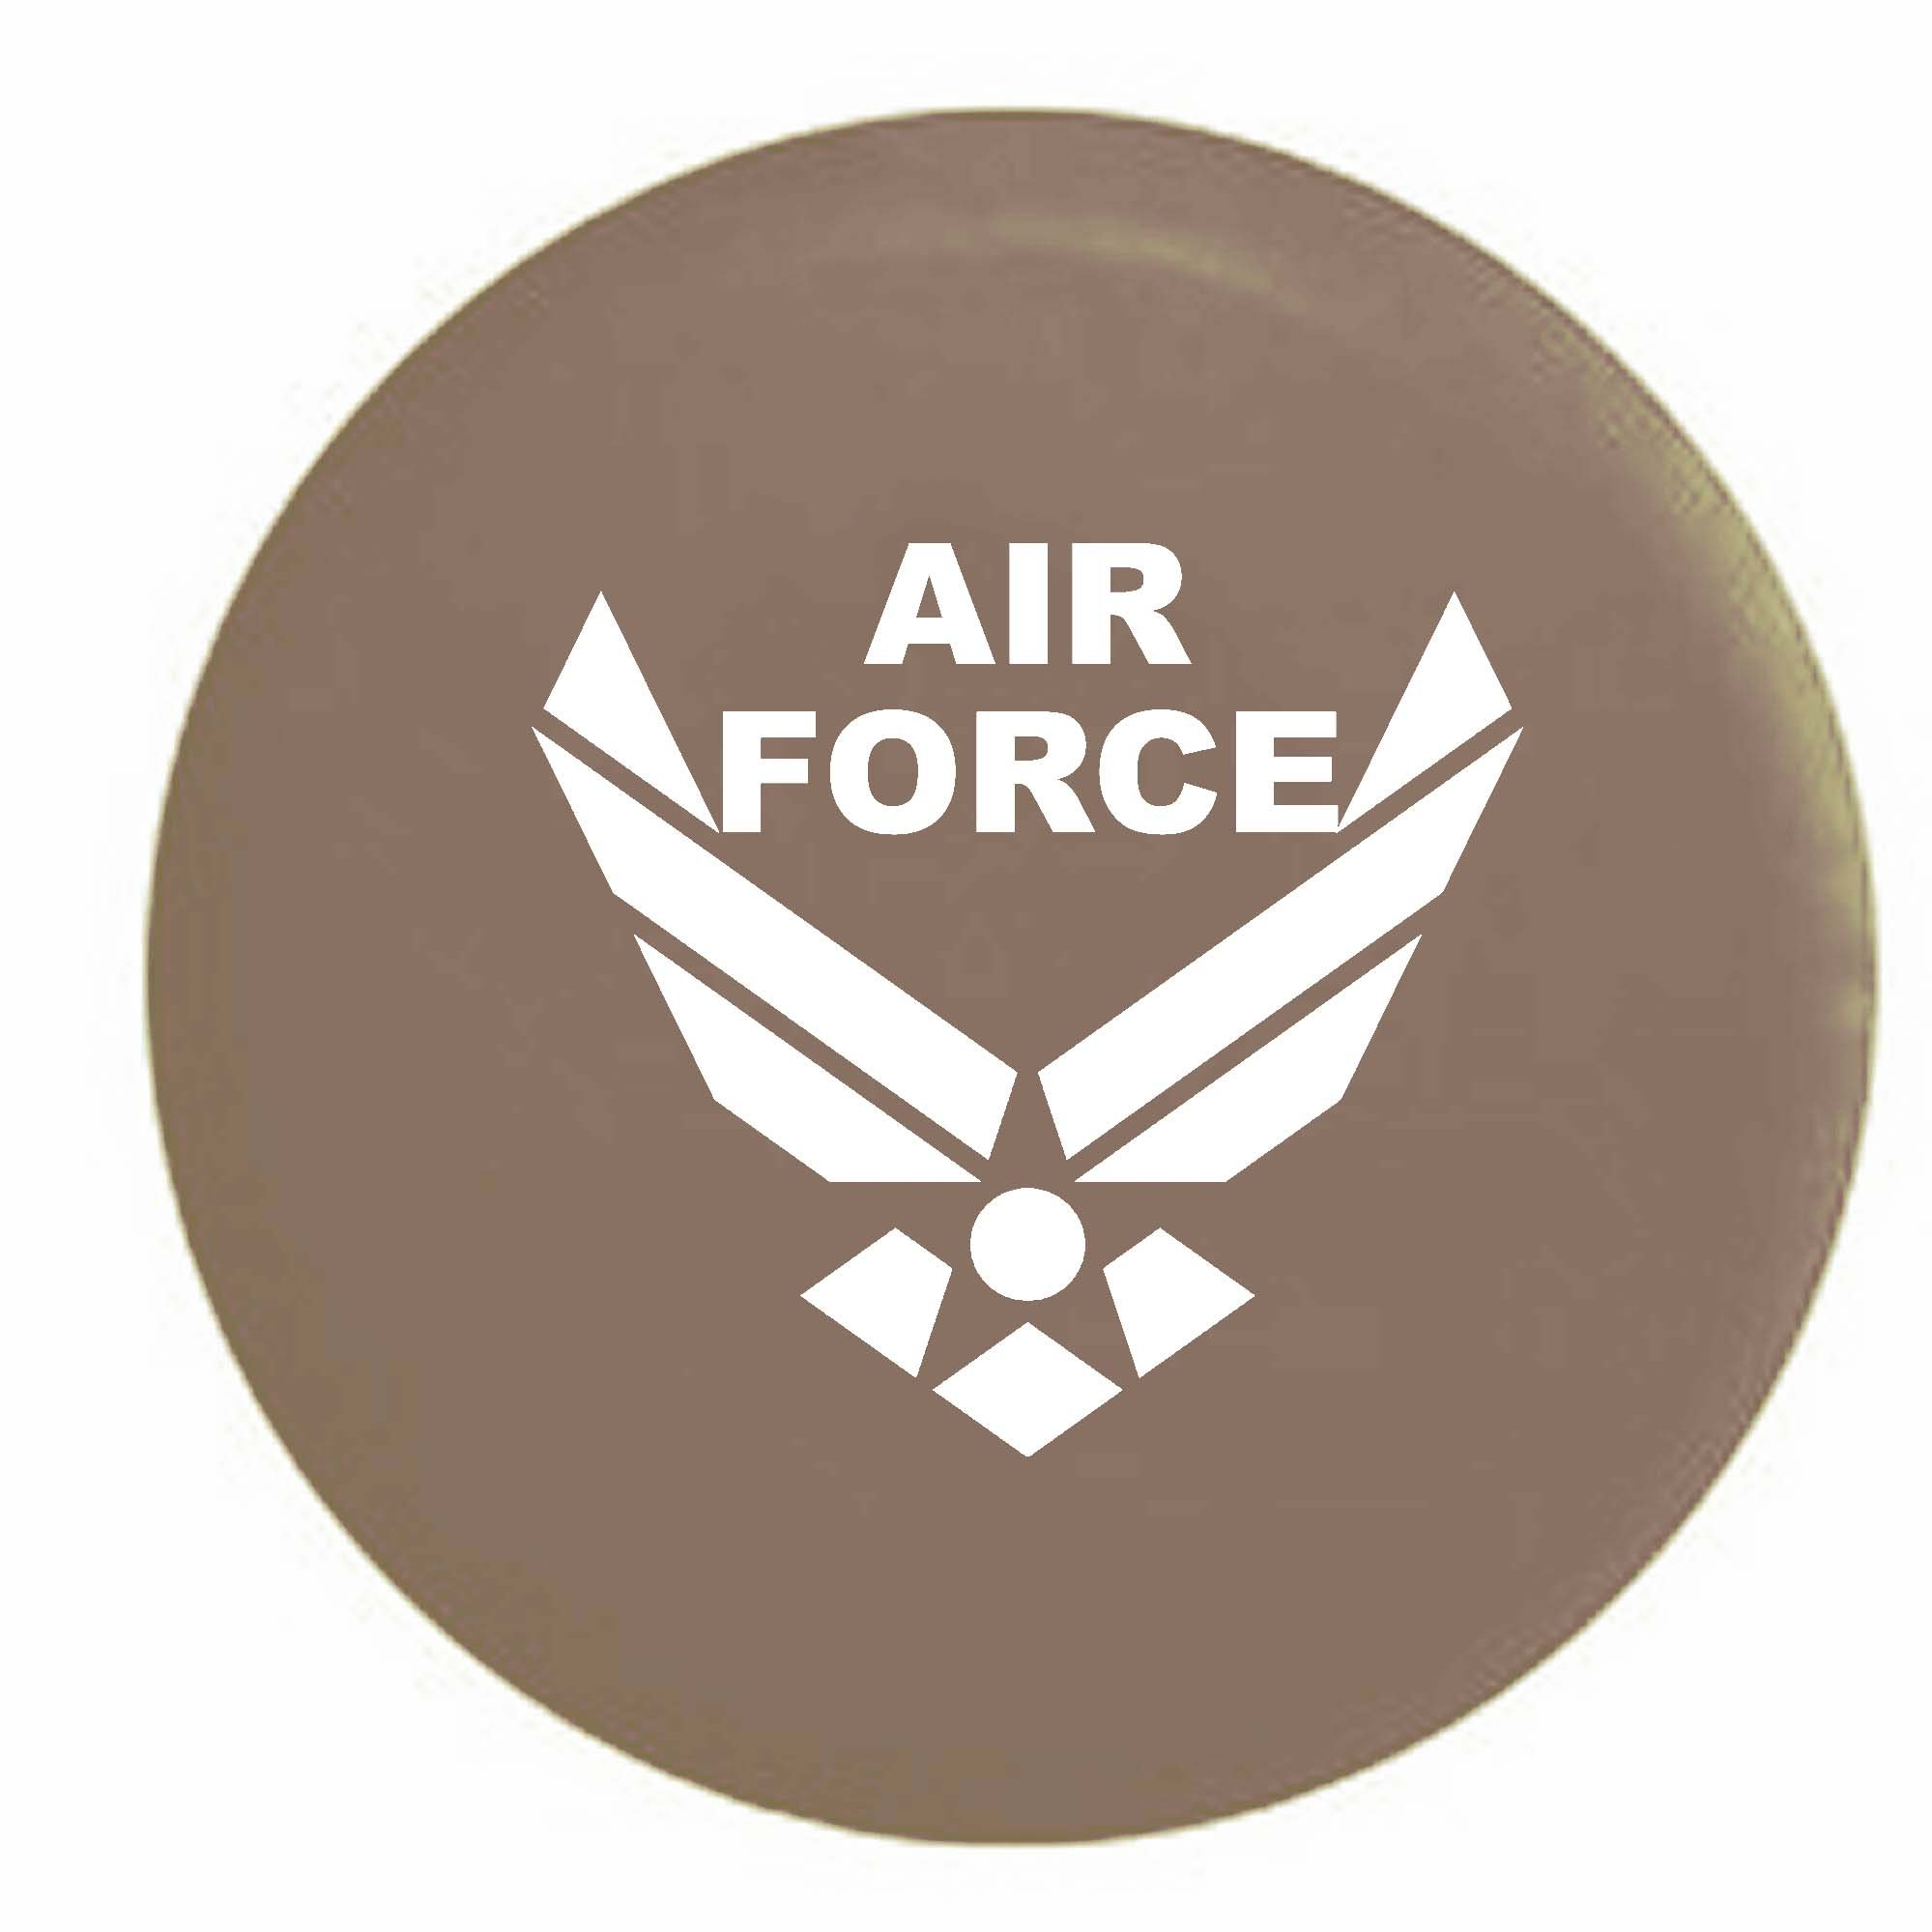 Pike USAF Air Force Military Trailer RV Spare Tire Cover OEM Vinyl Tan 30 in by Pike Outdoors